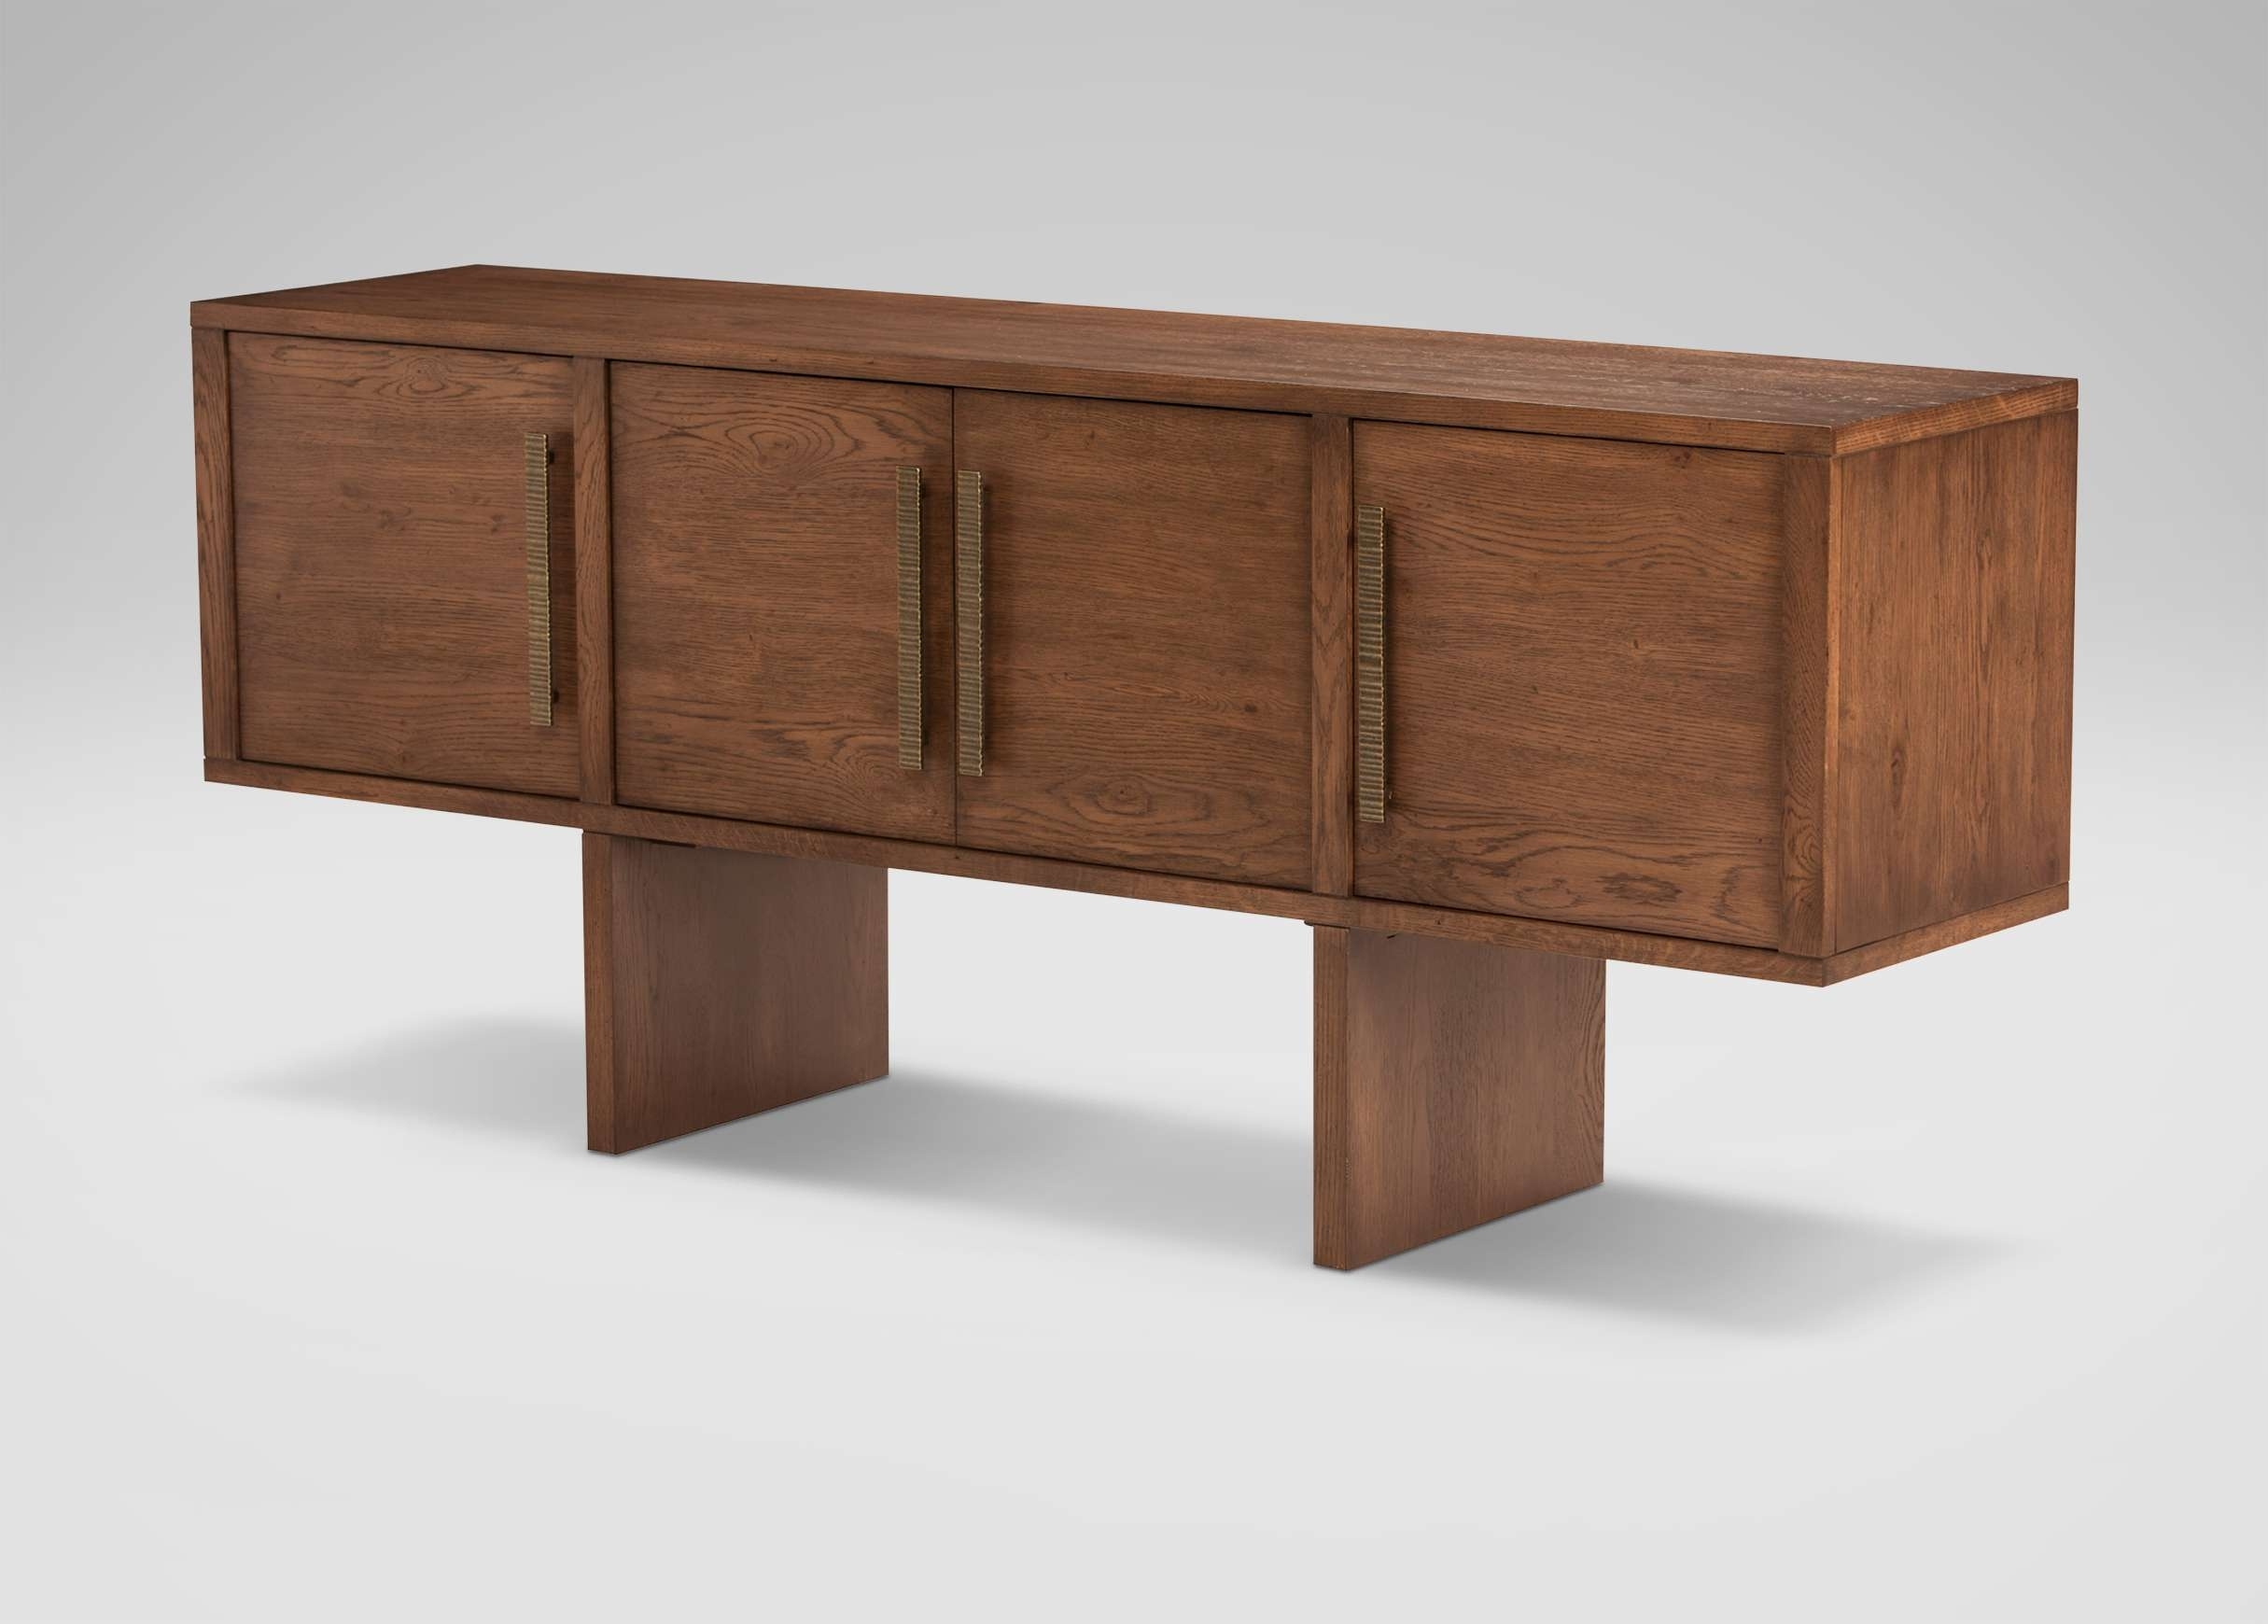 Jameson Buffet | Buffets, Sideboards & Servers Within Ethan Allen Sideboards (Gallery 12 of 20)